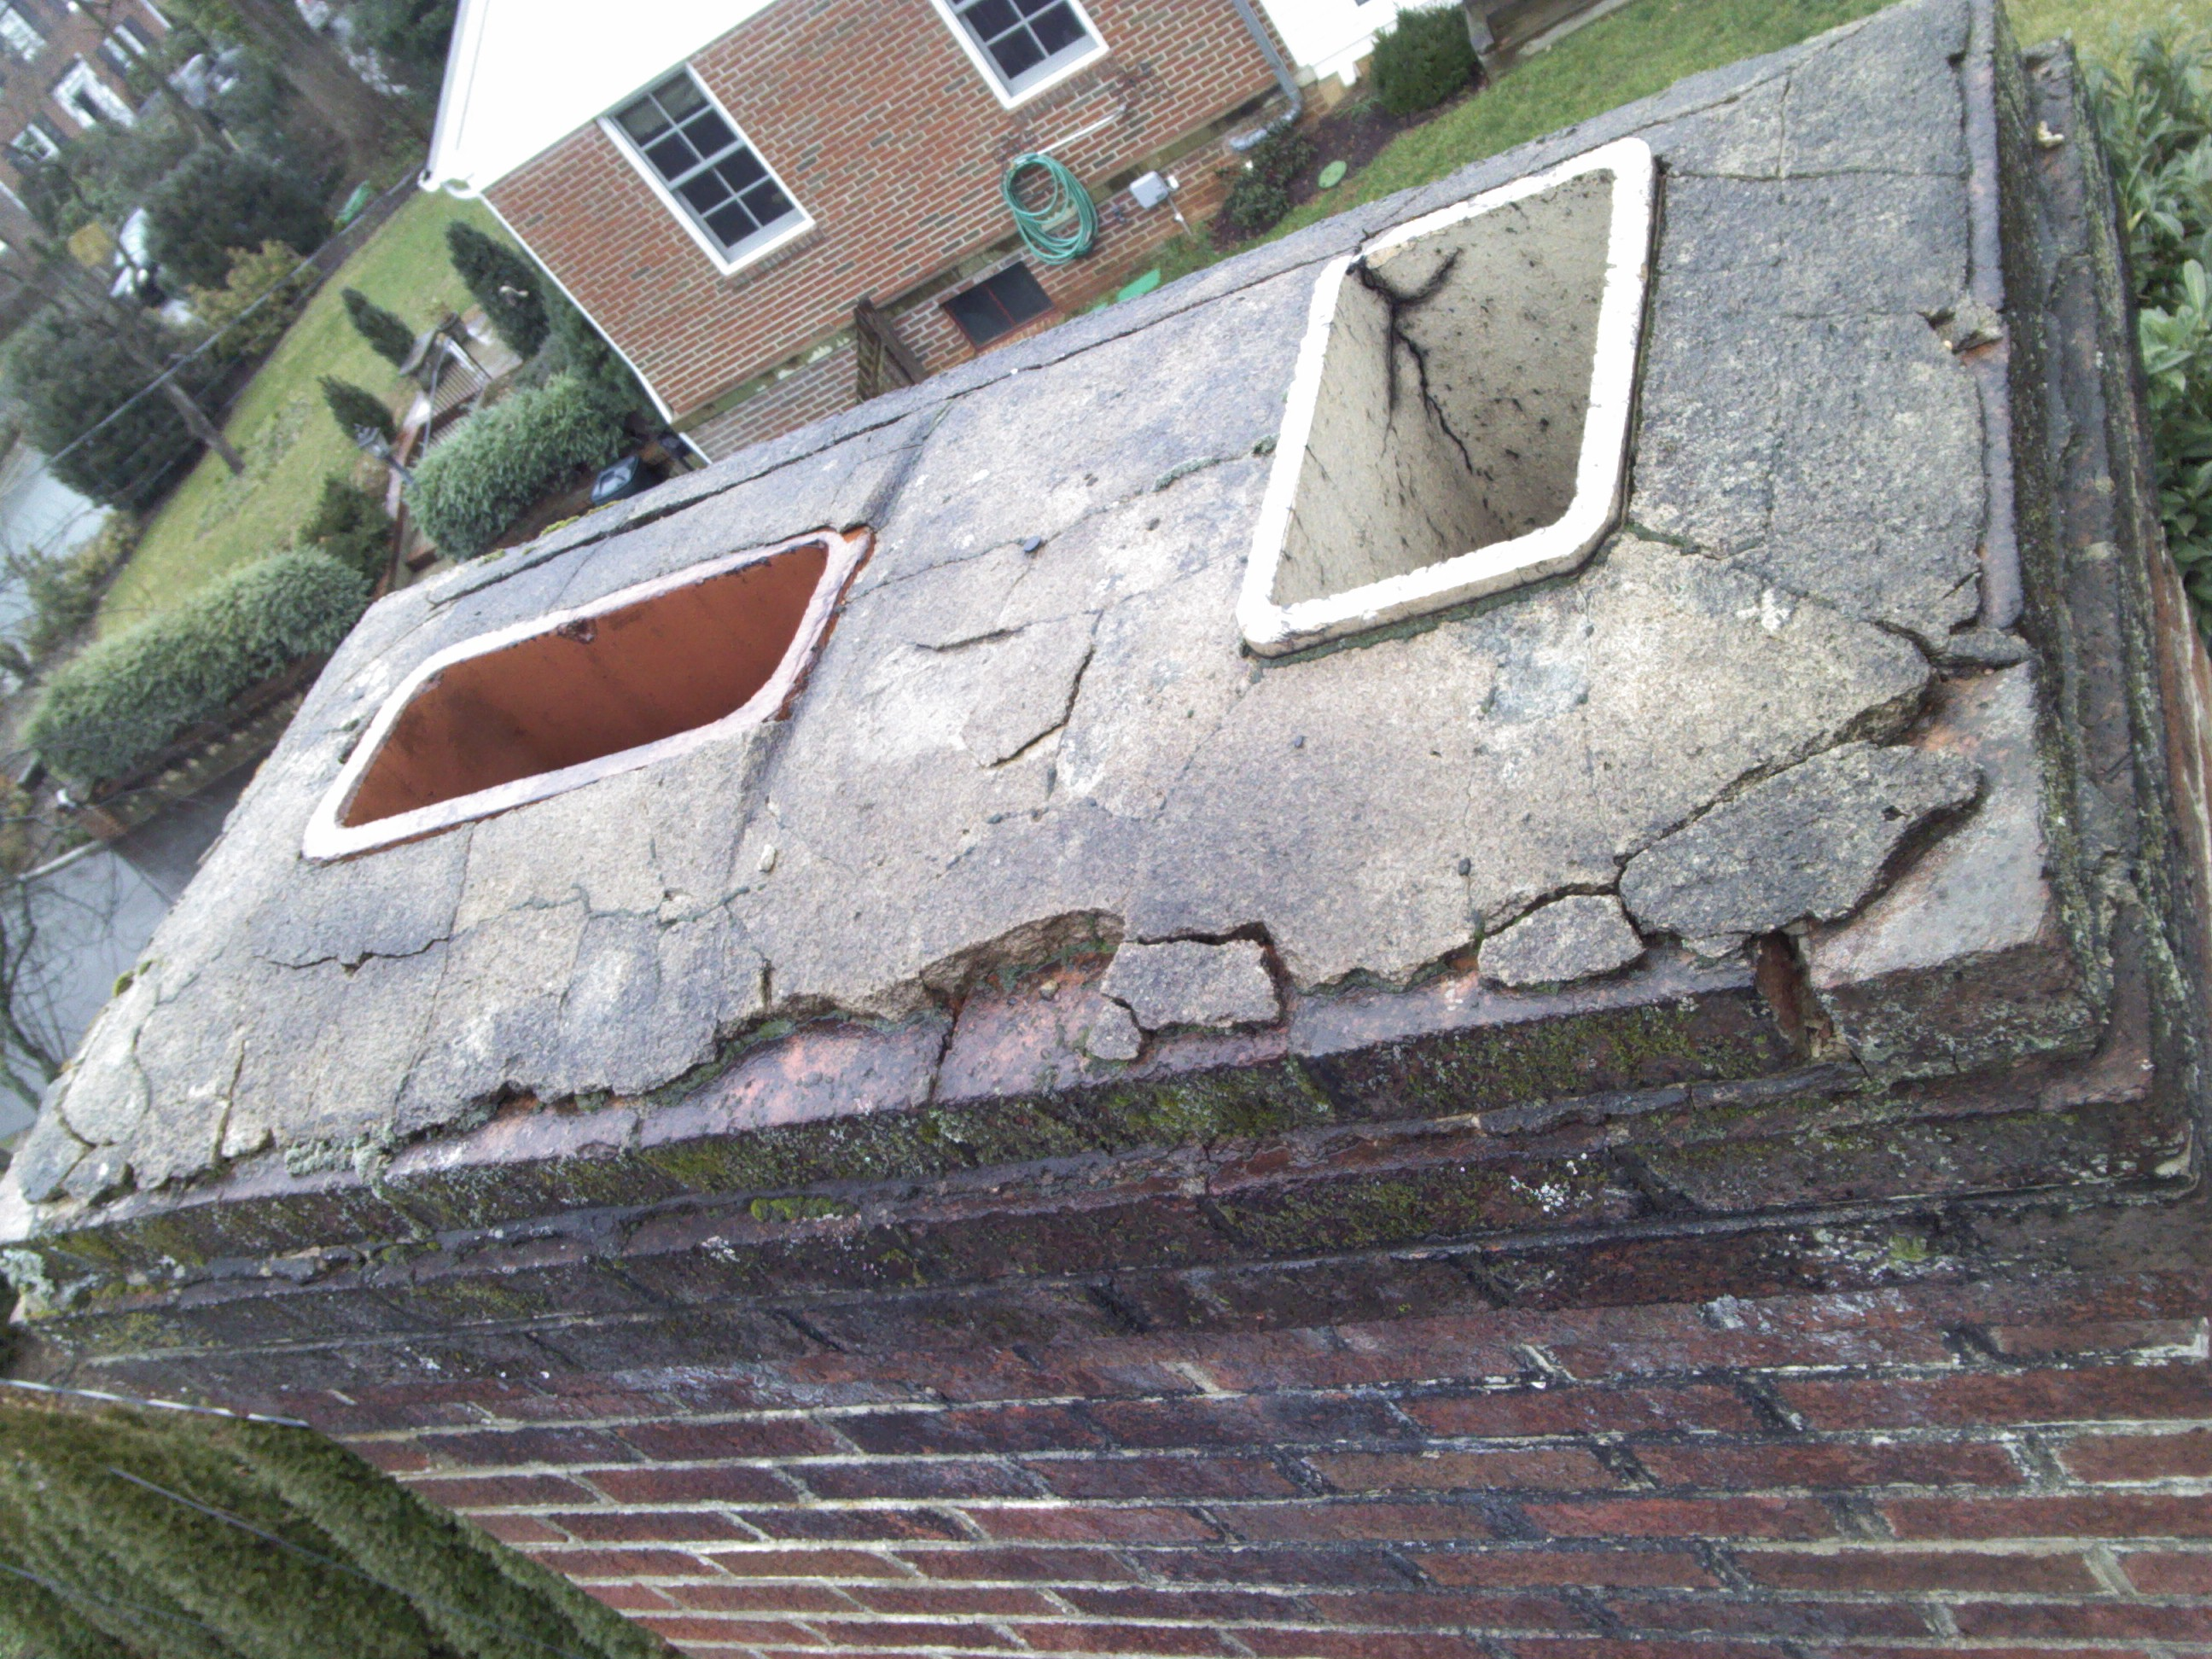 This wash is badly damaged and the flues are unprotected